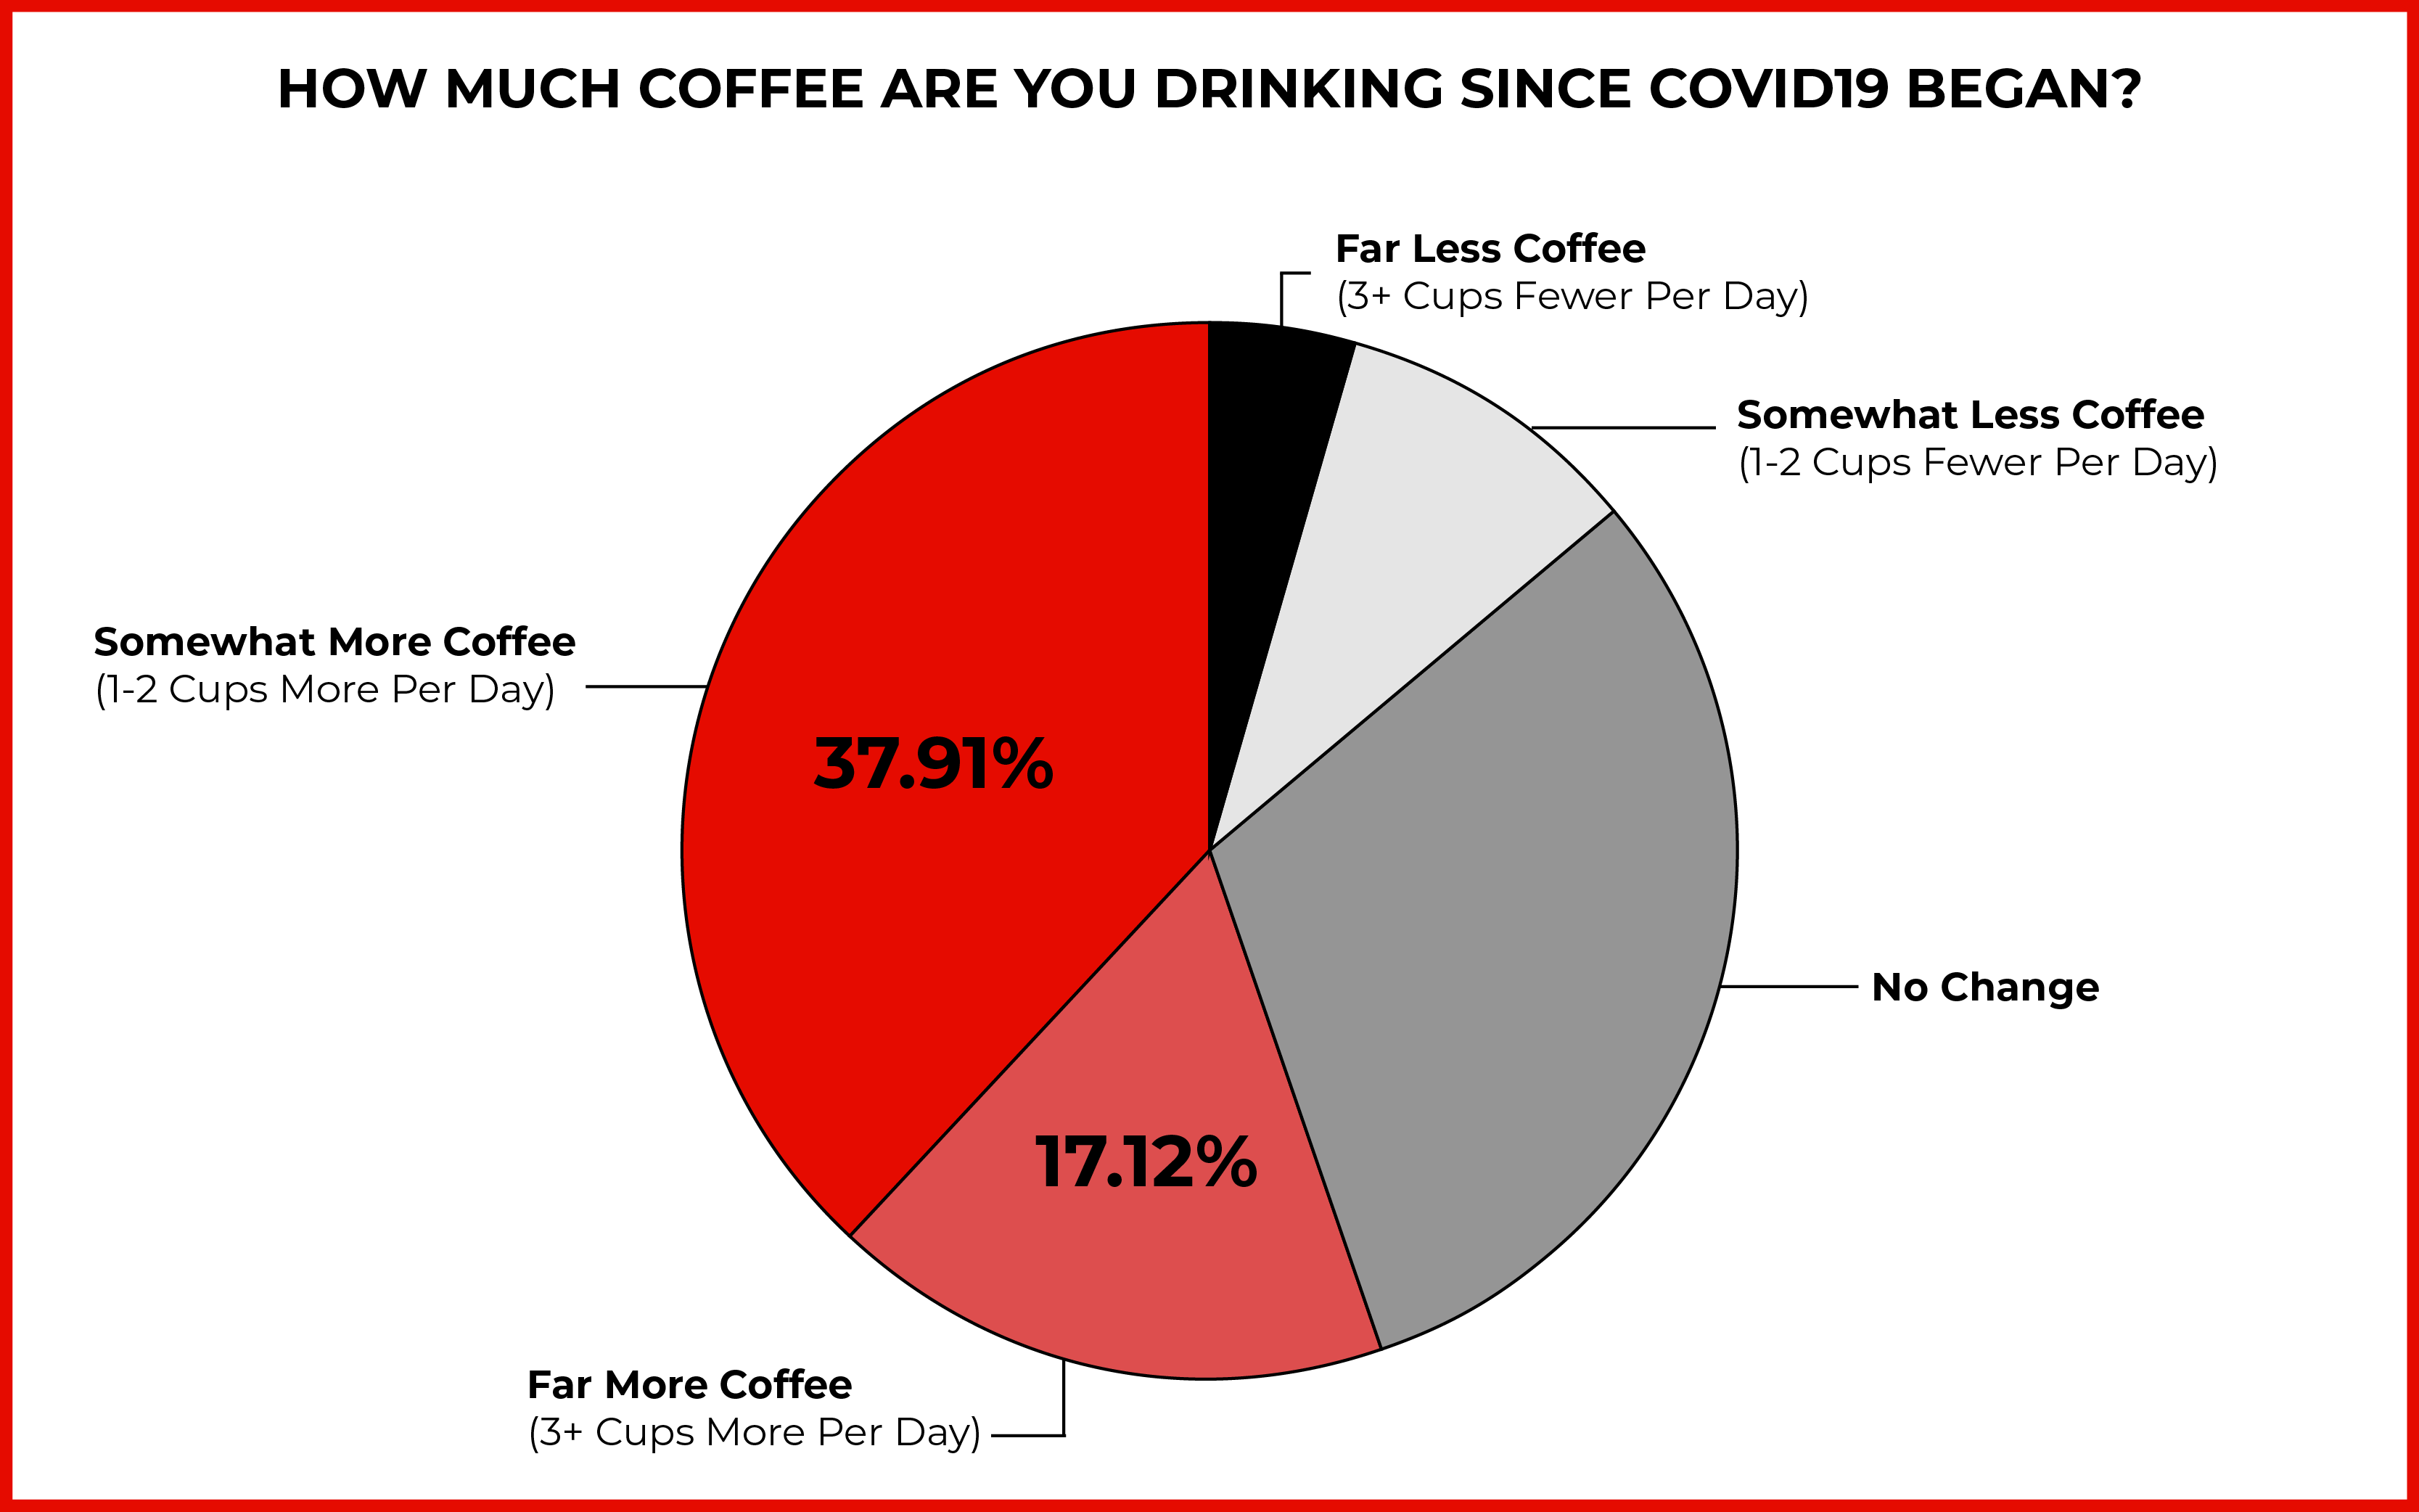 Pie chart of coffee consumption since the start of COVID19, where 55.08% of people report an increase in consumption